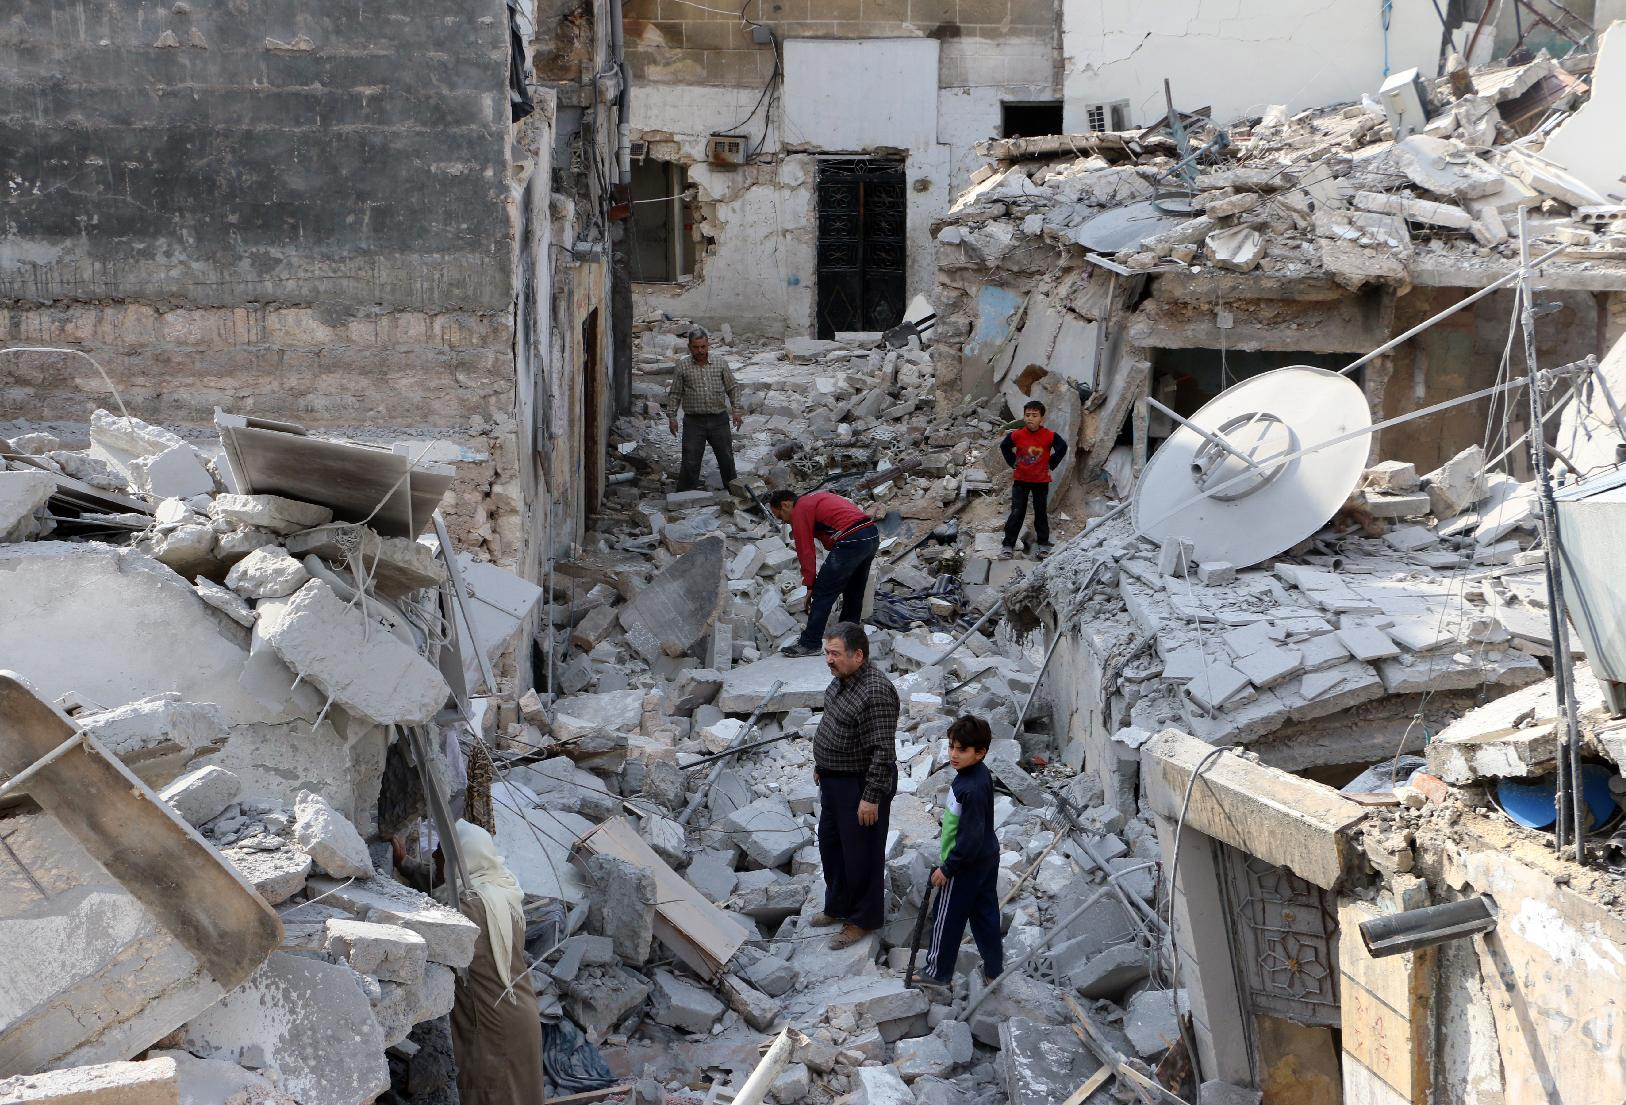 Syrians search through the rubble of buildings for re-usable items in the Kalasa neighbourhood of Aleppo on October 28, 2014 (AFP Photo/Baraa al-Halabi)